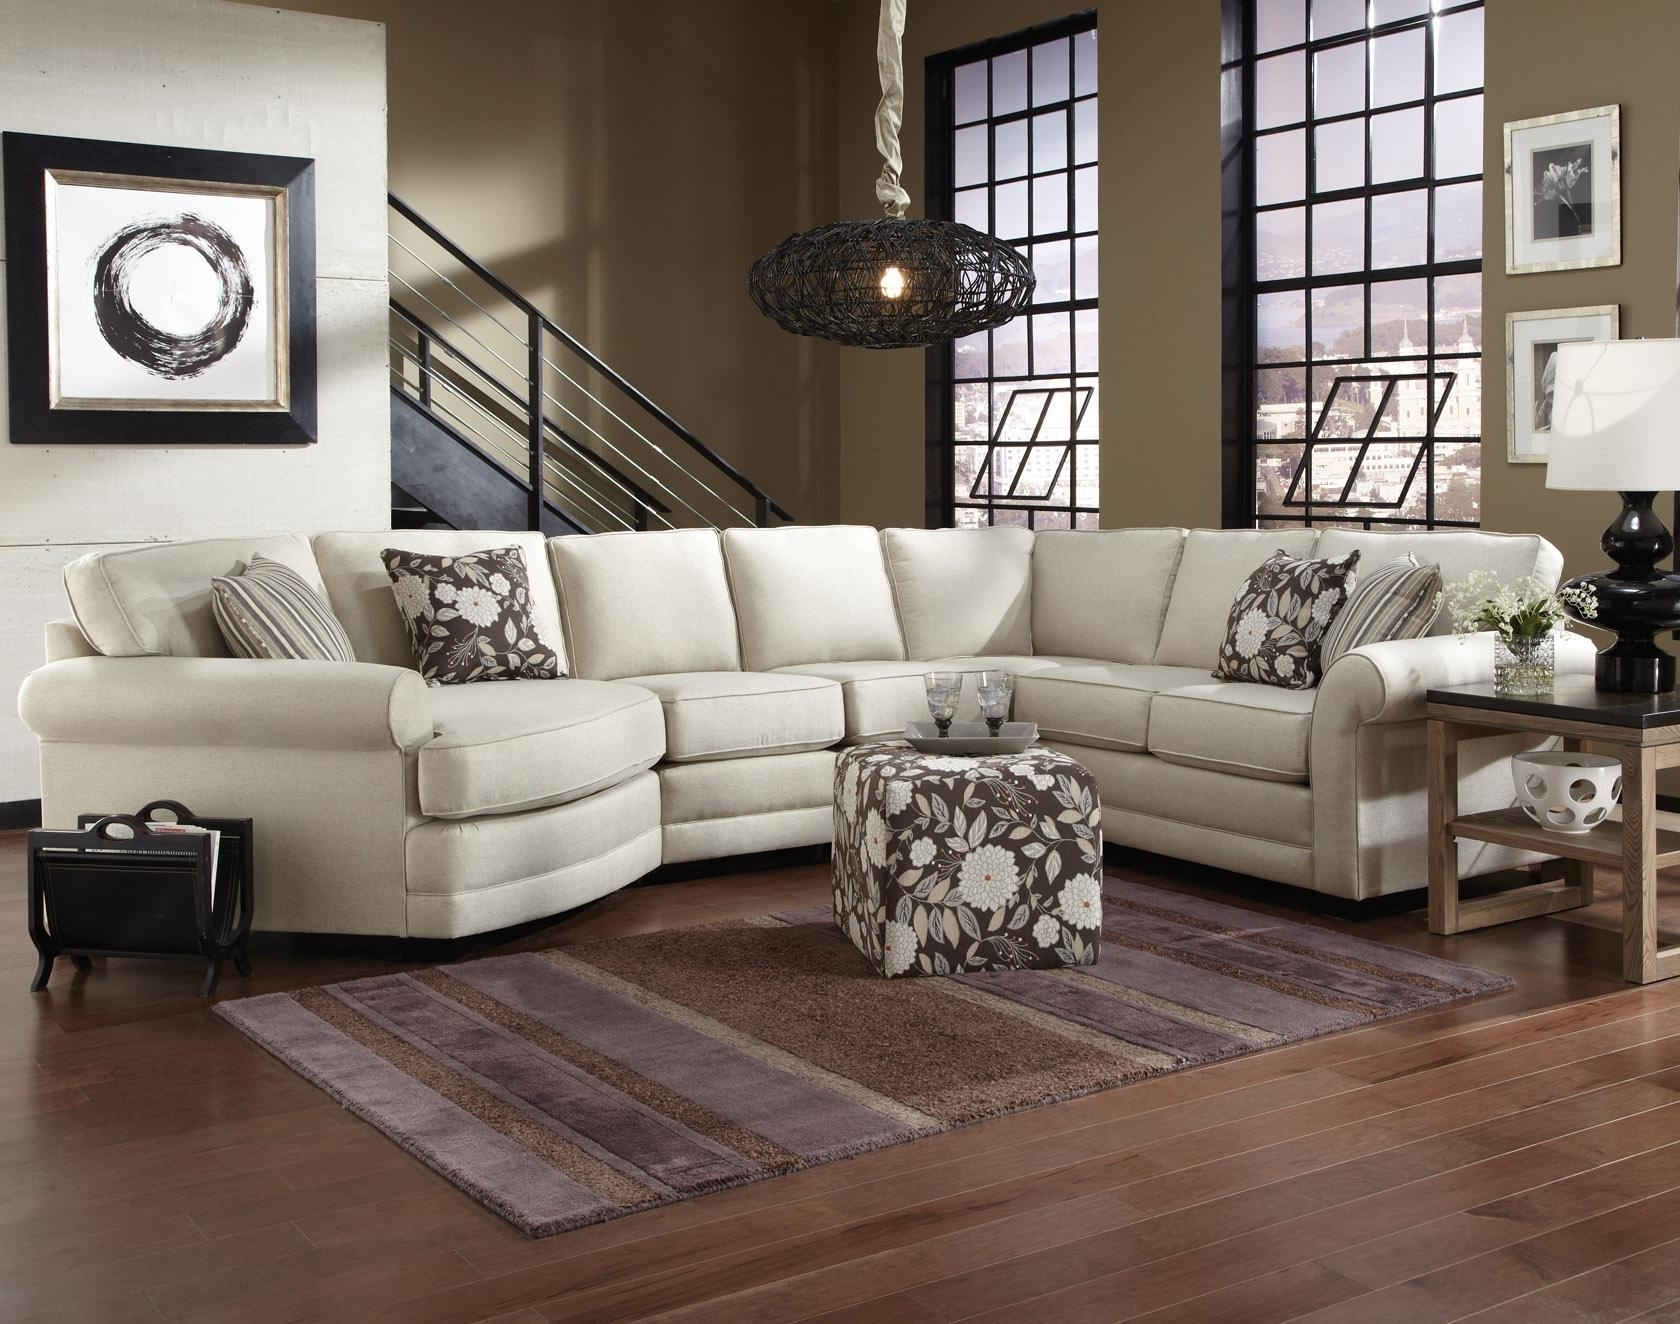 England Brantley 5 Seat Sectional Sofa With Cuddler – Ahfa – Sofa Regarding Best And Newest Kansas City Mo Sectional Sofas (View 3 of 20)